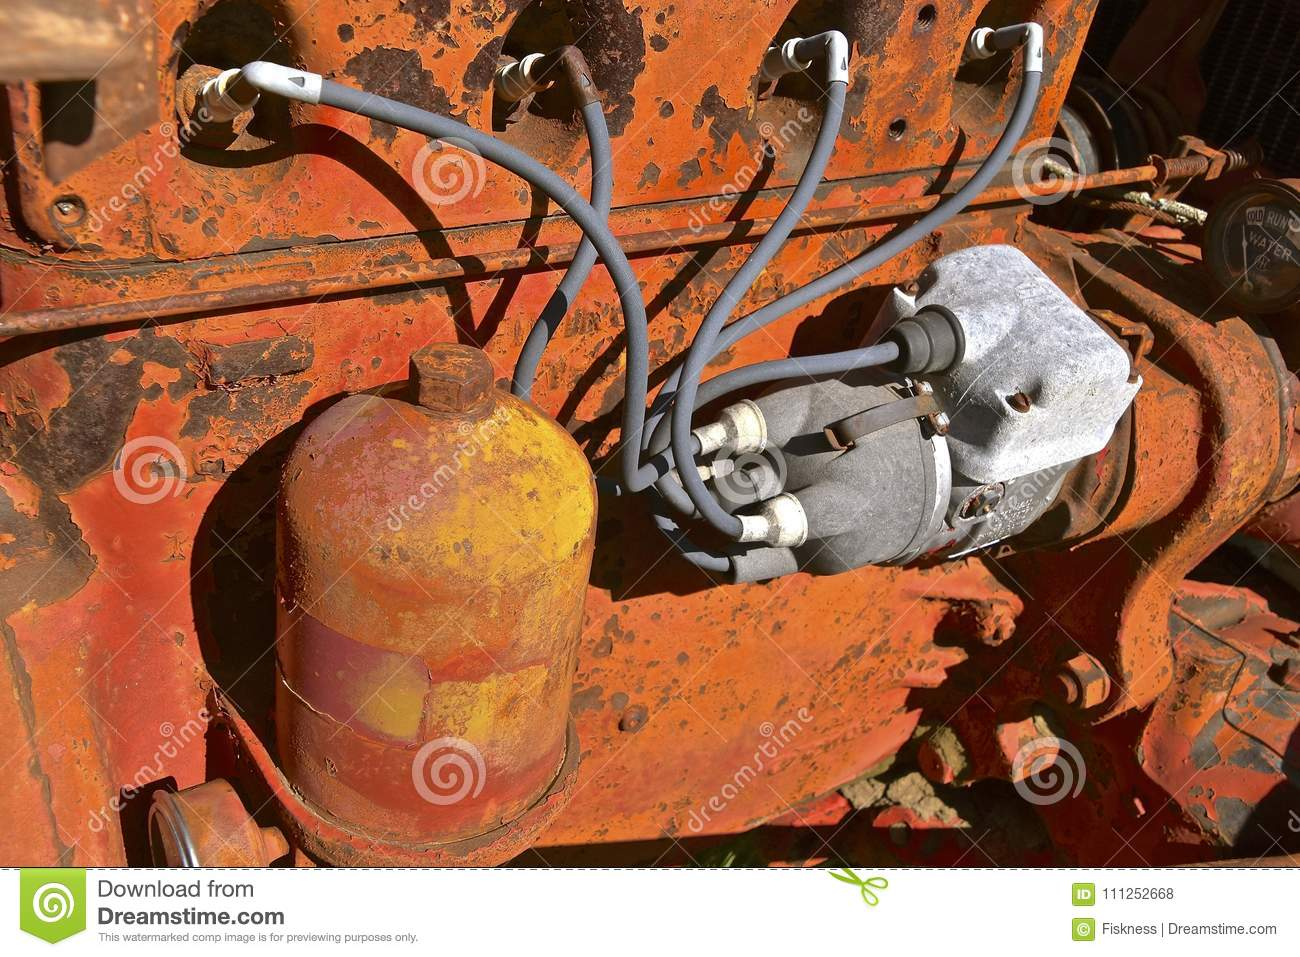 spark plug wiring of an old orange tractor